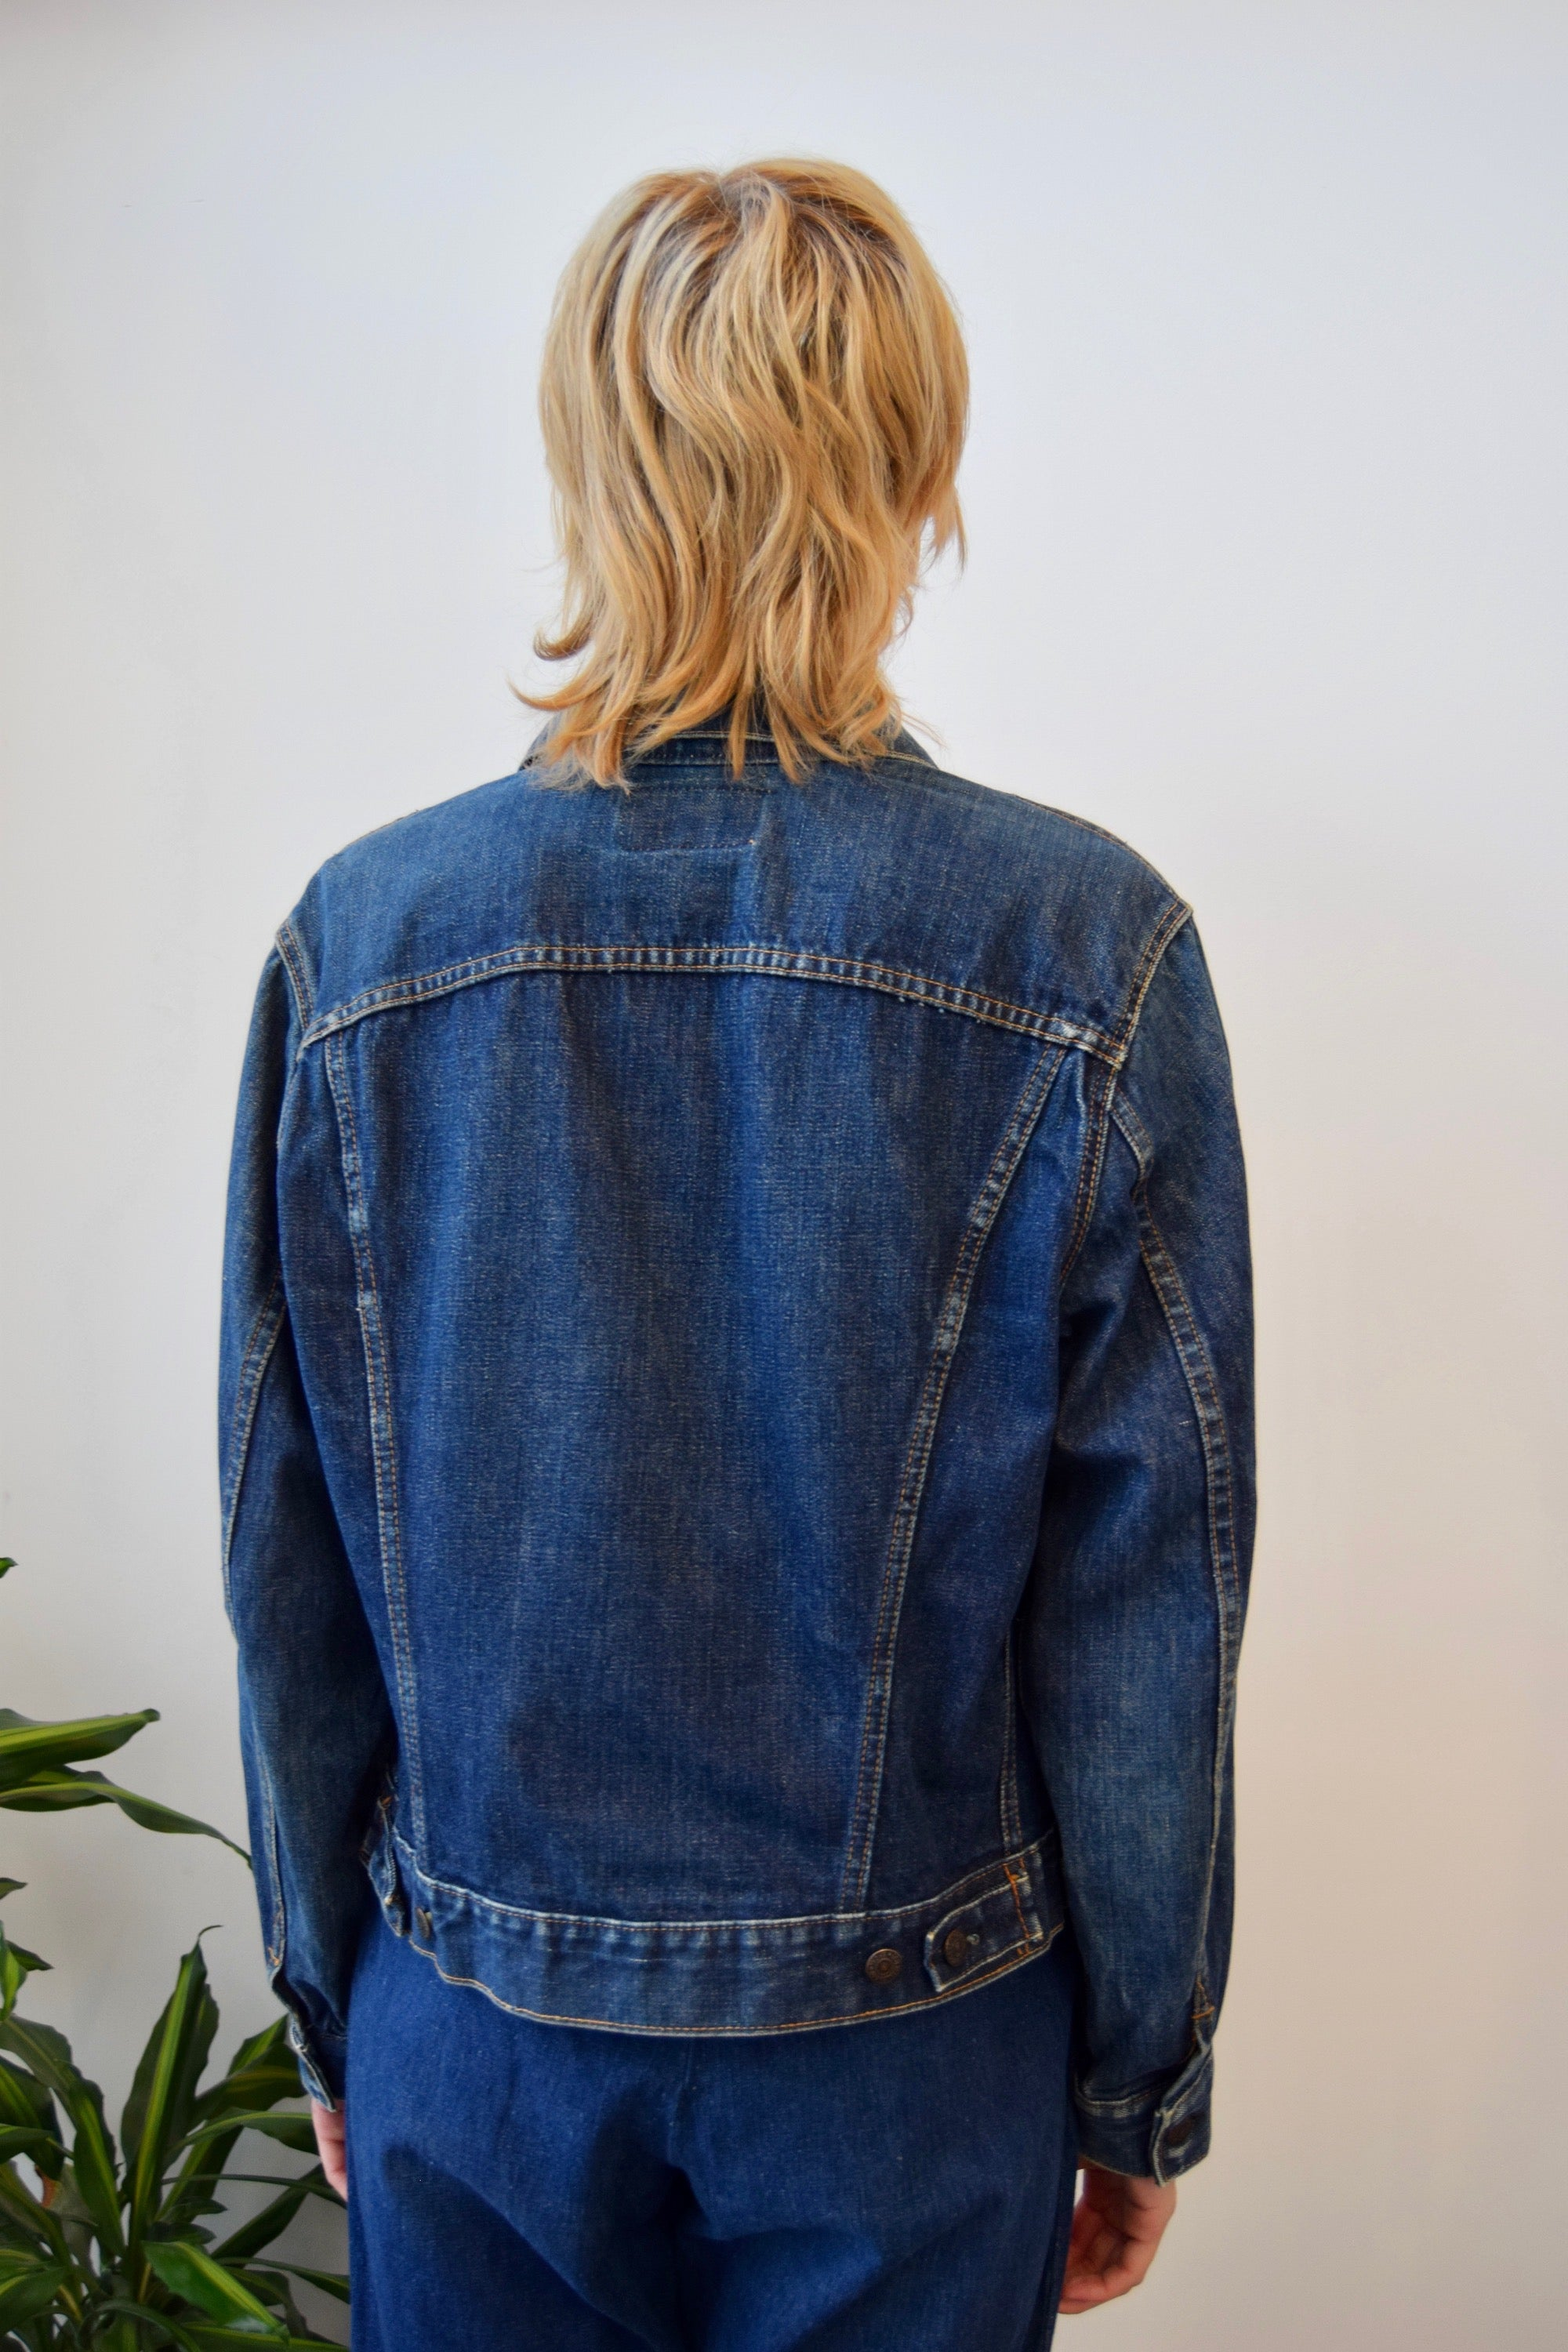 Levi's Big E Denim Jacket Type 3 Trucker Style